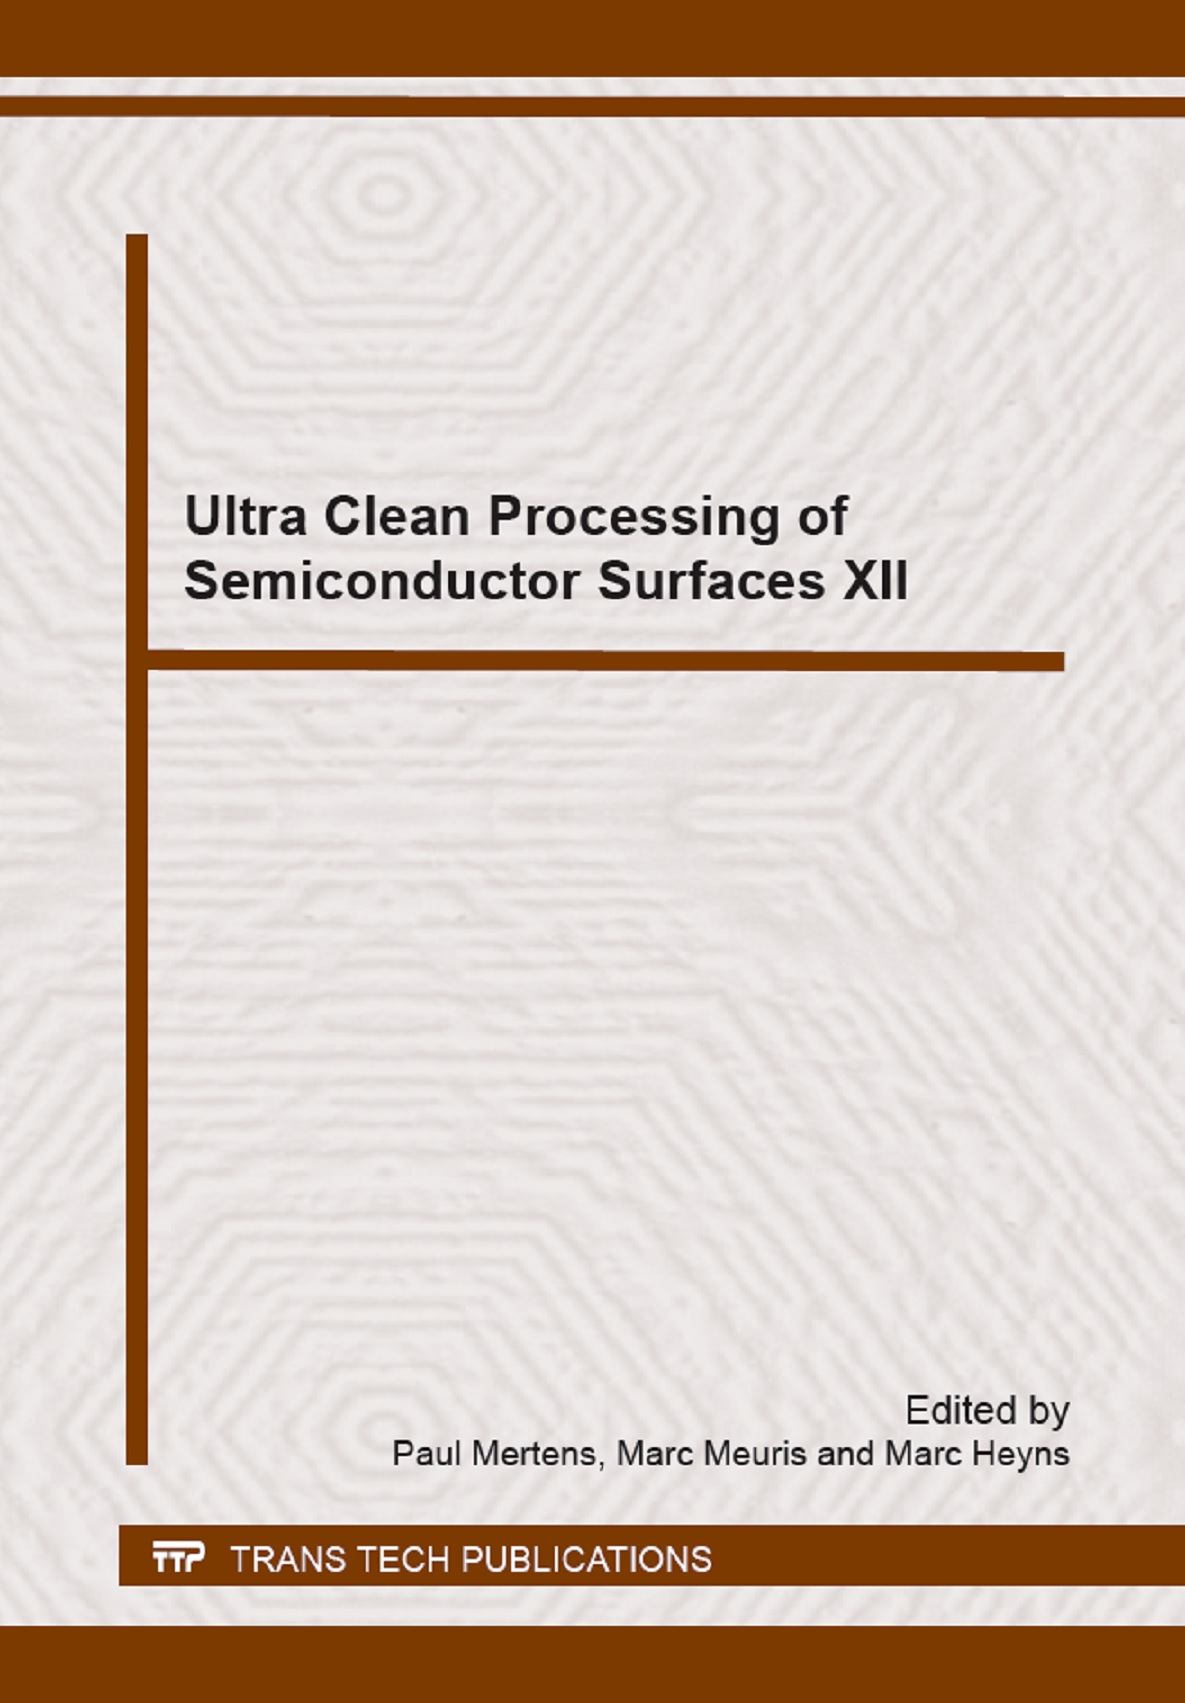 Ultra Clean Processing of Semiconductor Surfaces XII